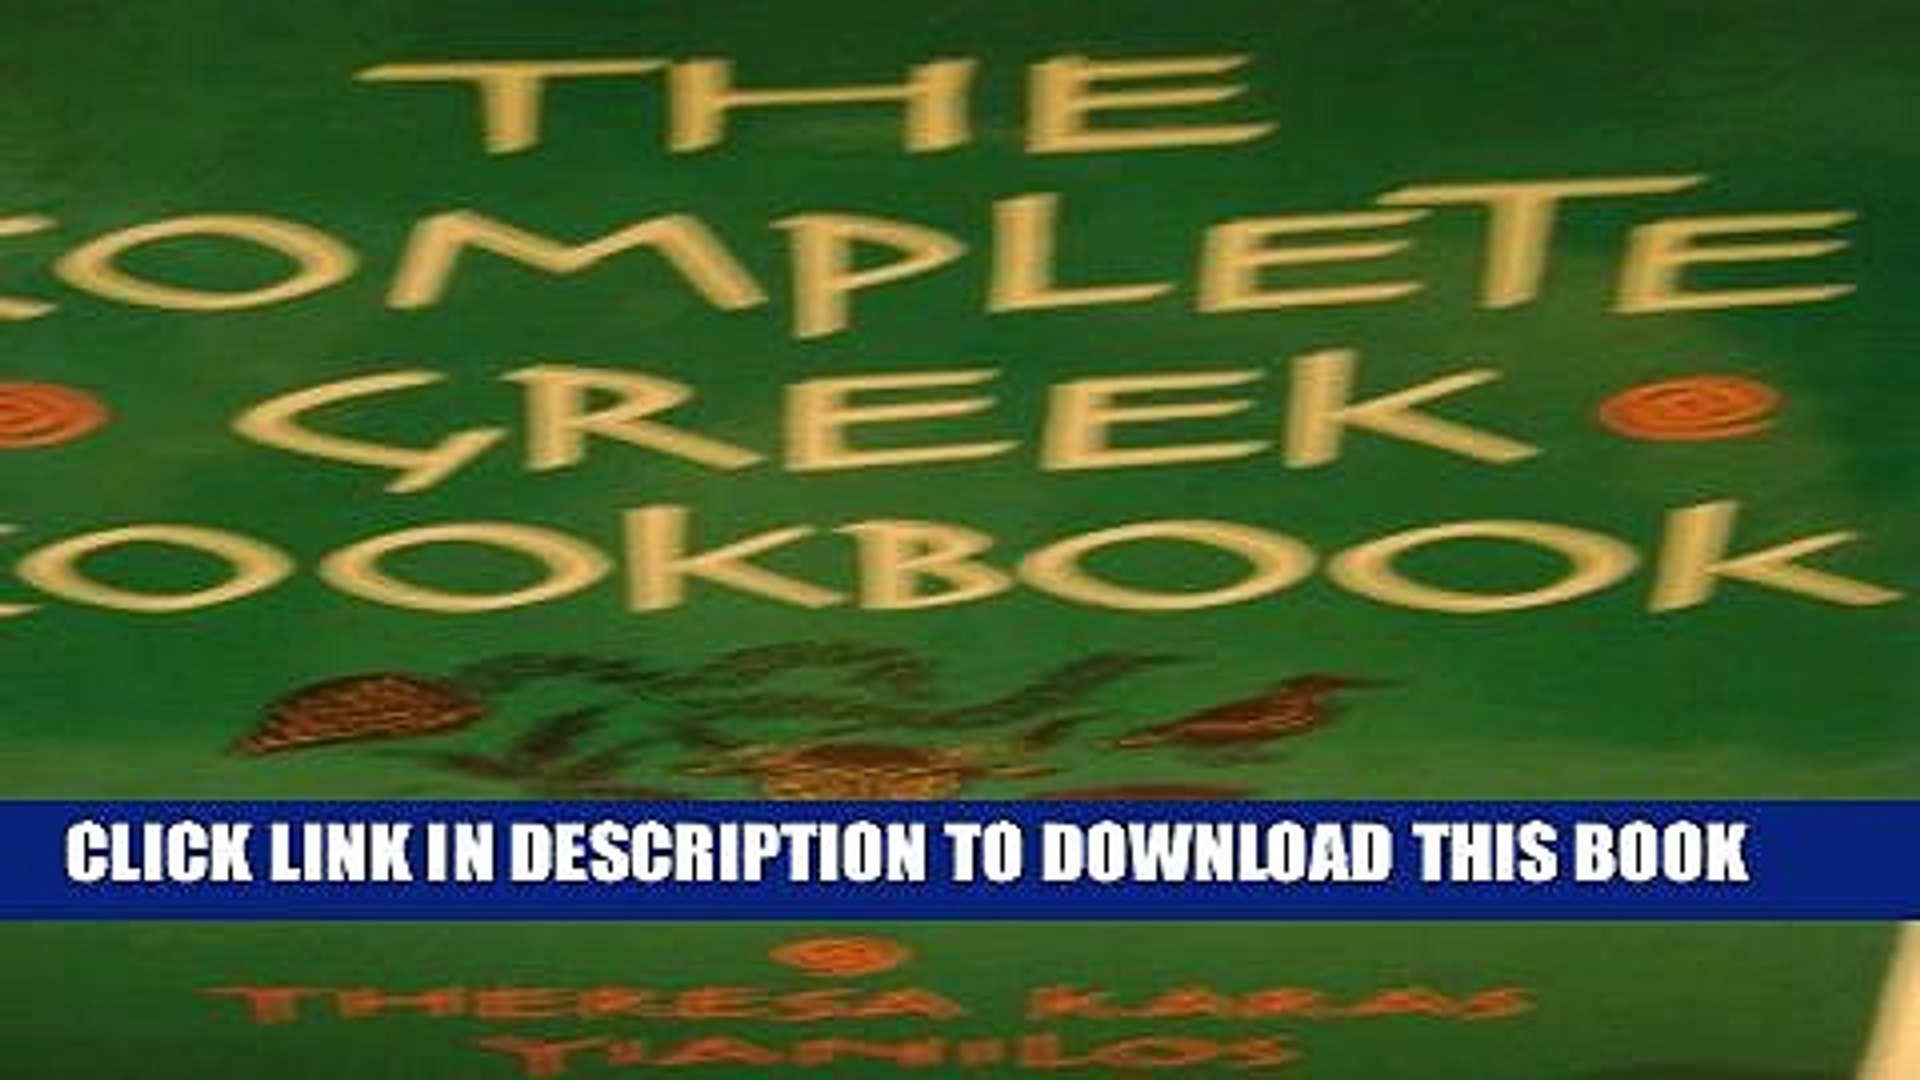 [Read PDF] The Complete Greek Cookbook: The Best from Three Thousand Years of Greek Cooking Ebook